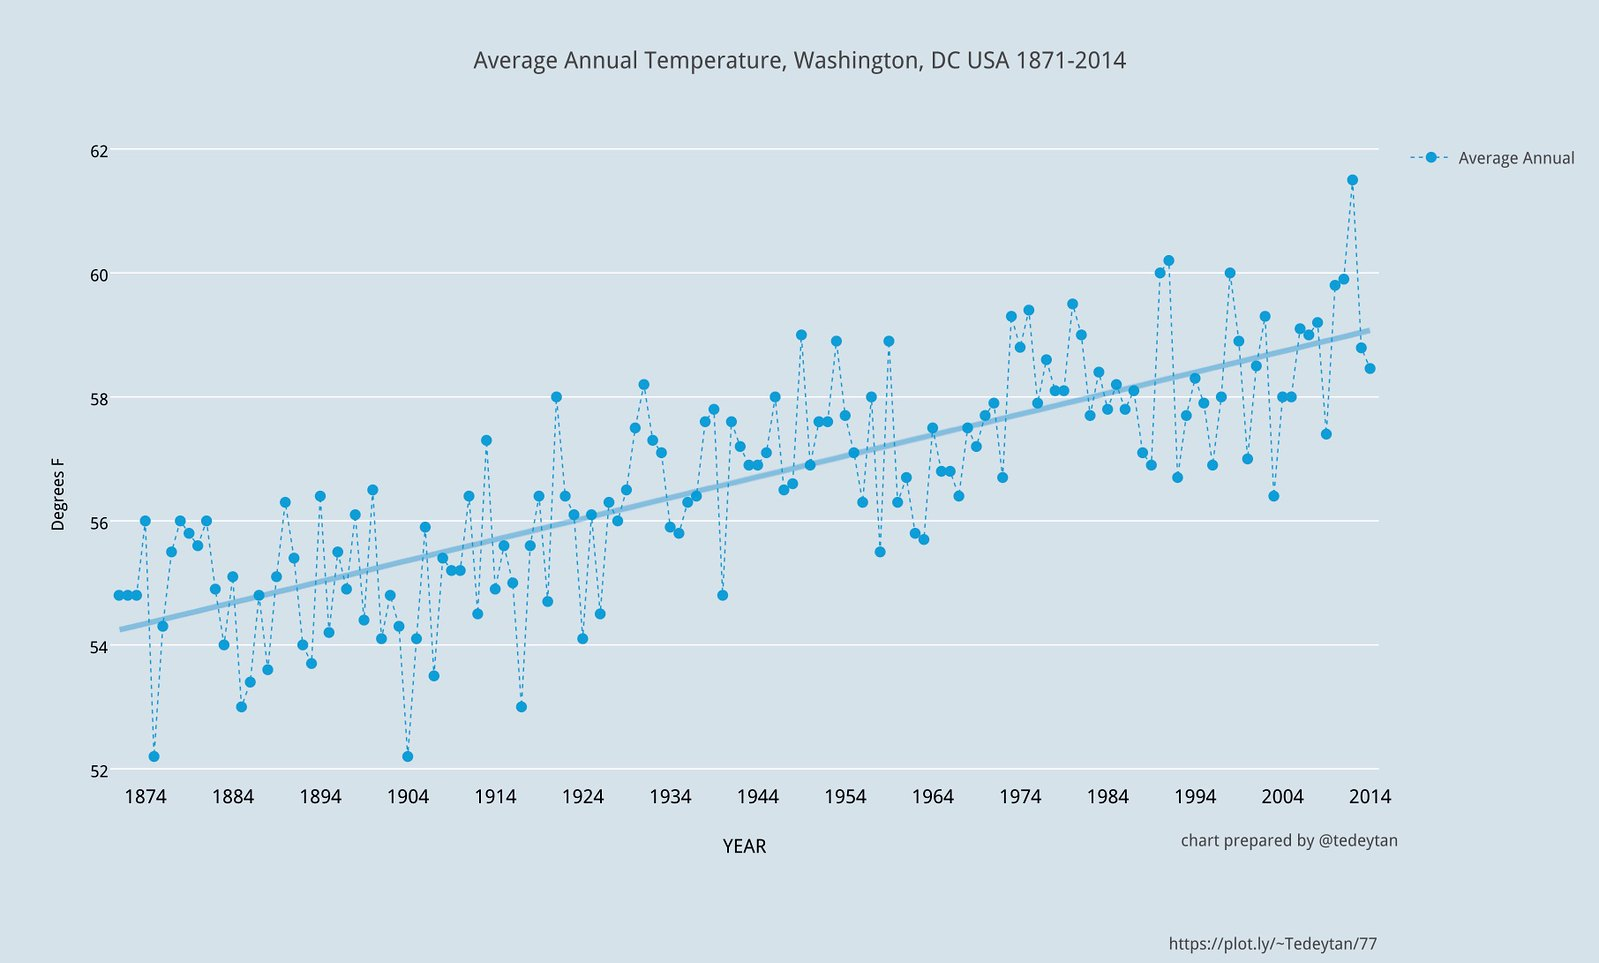 Average Annual Temperature Washington DC USA 1871-2014 51552